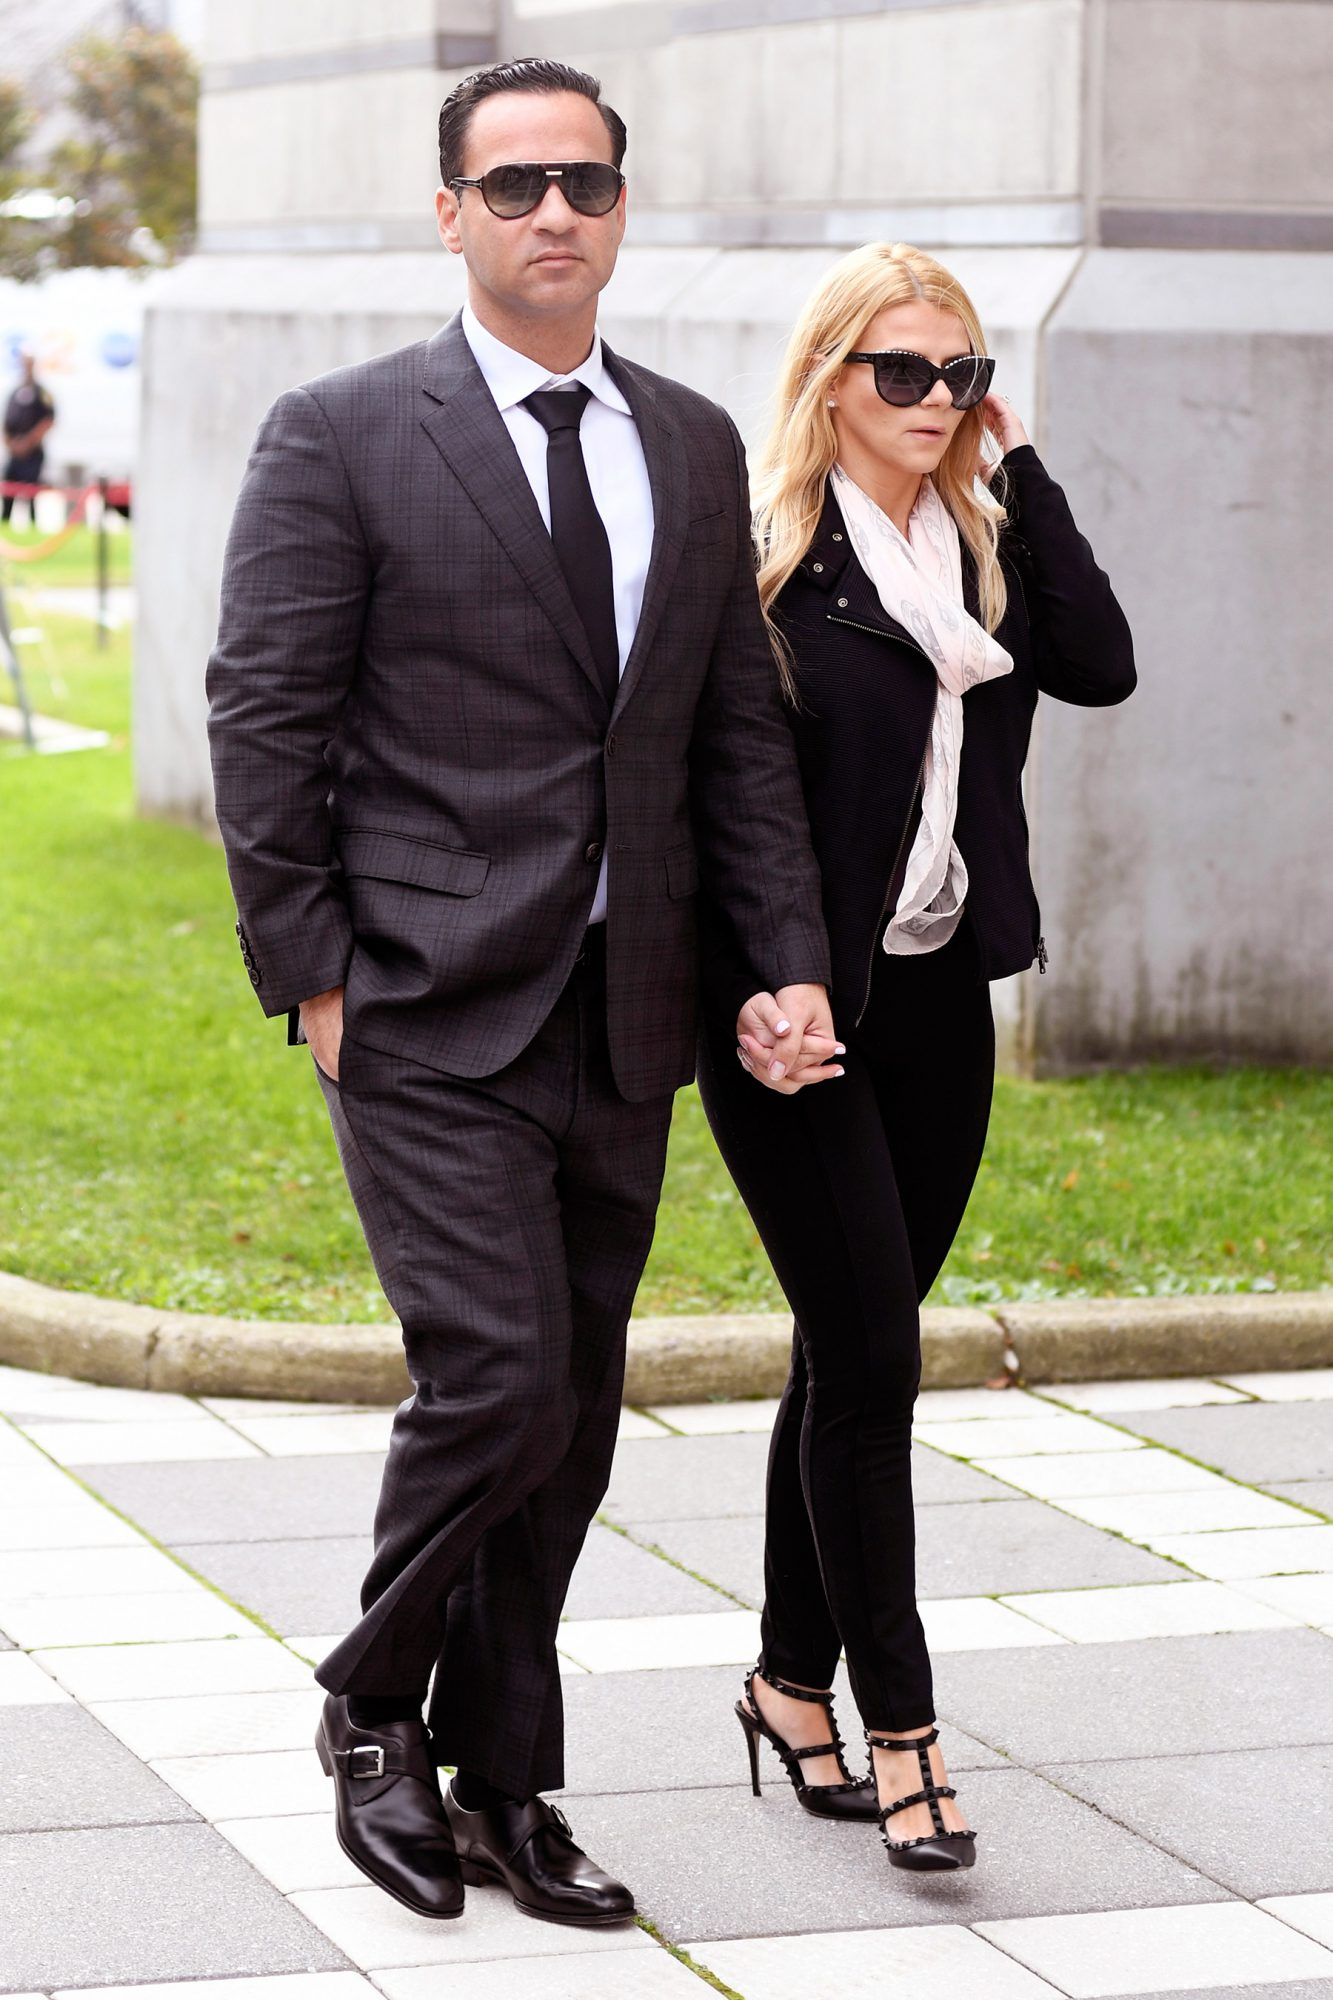 Mike (The Situation) Sorrentino and his girlfriend are photogaphed arriving at Newwark Nj court were he is to be sentenced for tax evasion